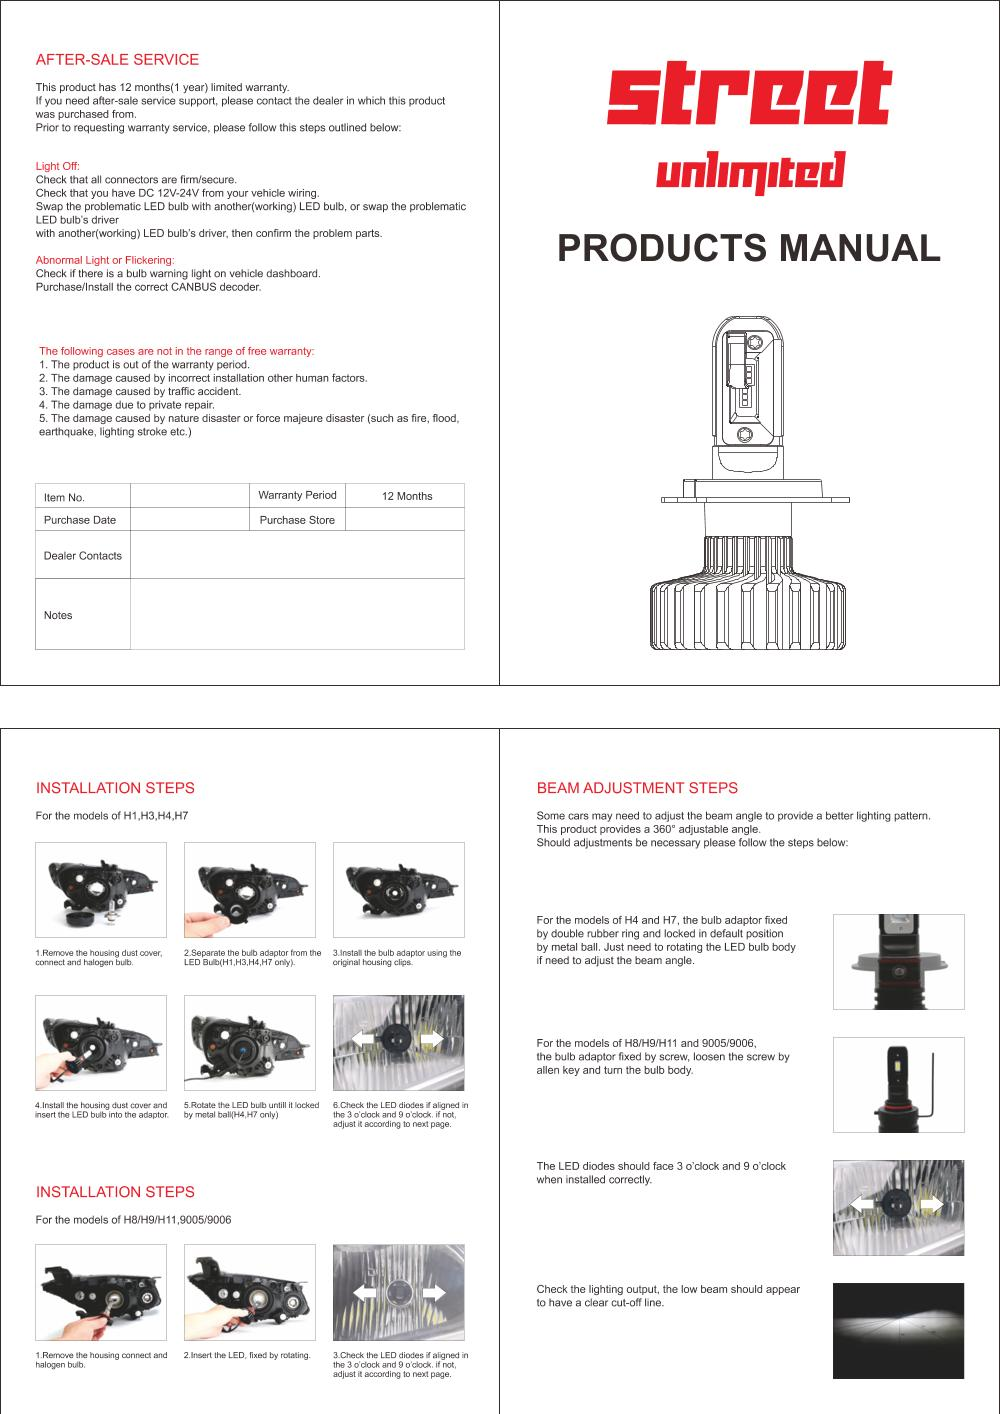 STU-G11R Street Unlimited Product Manual Installation Instructions